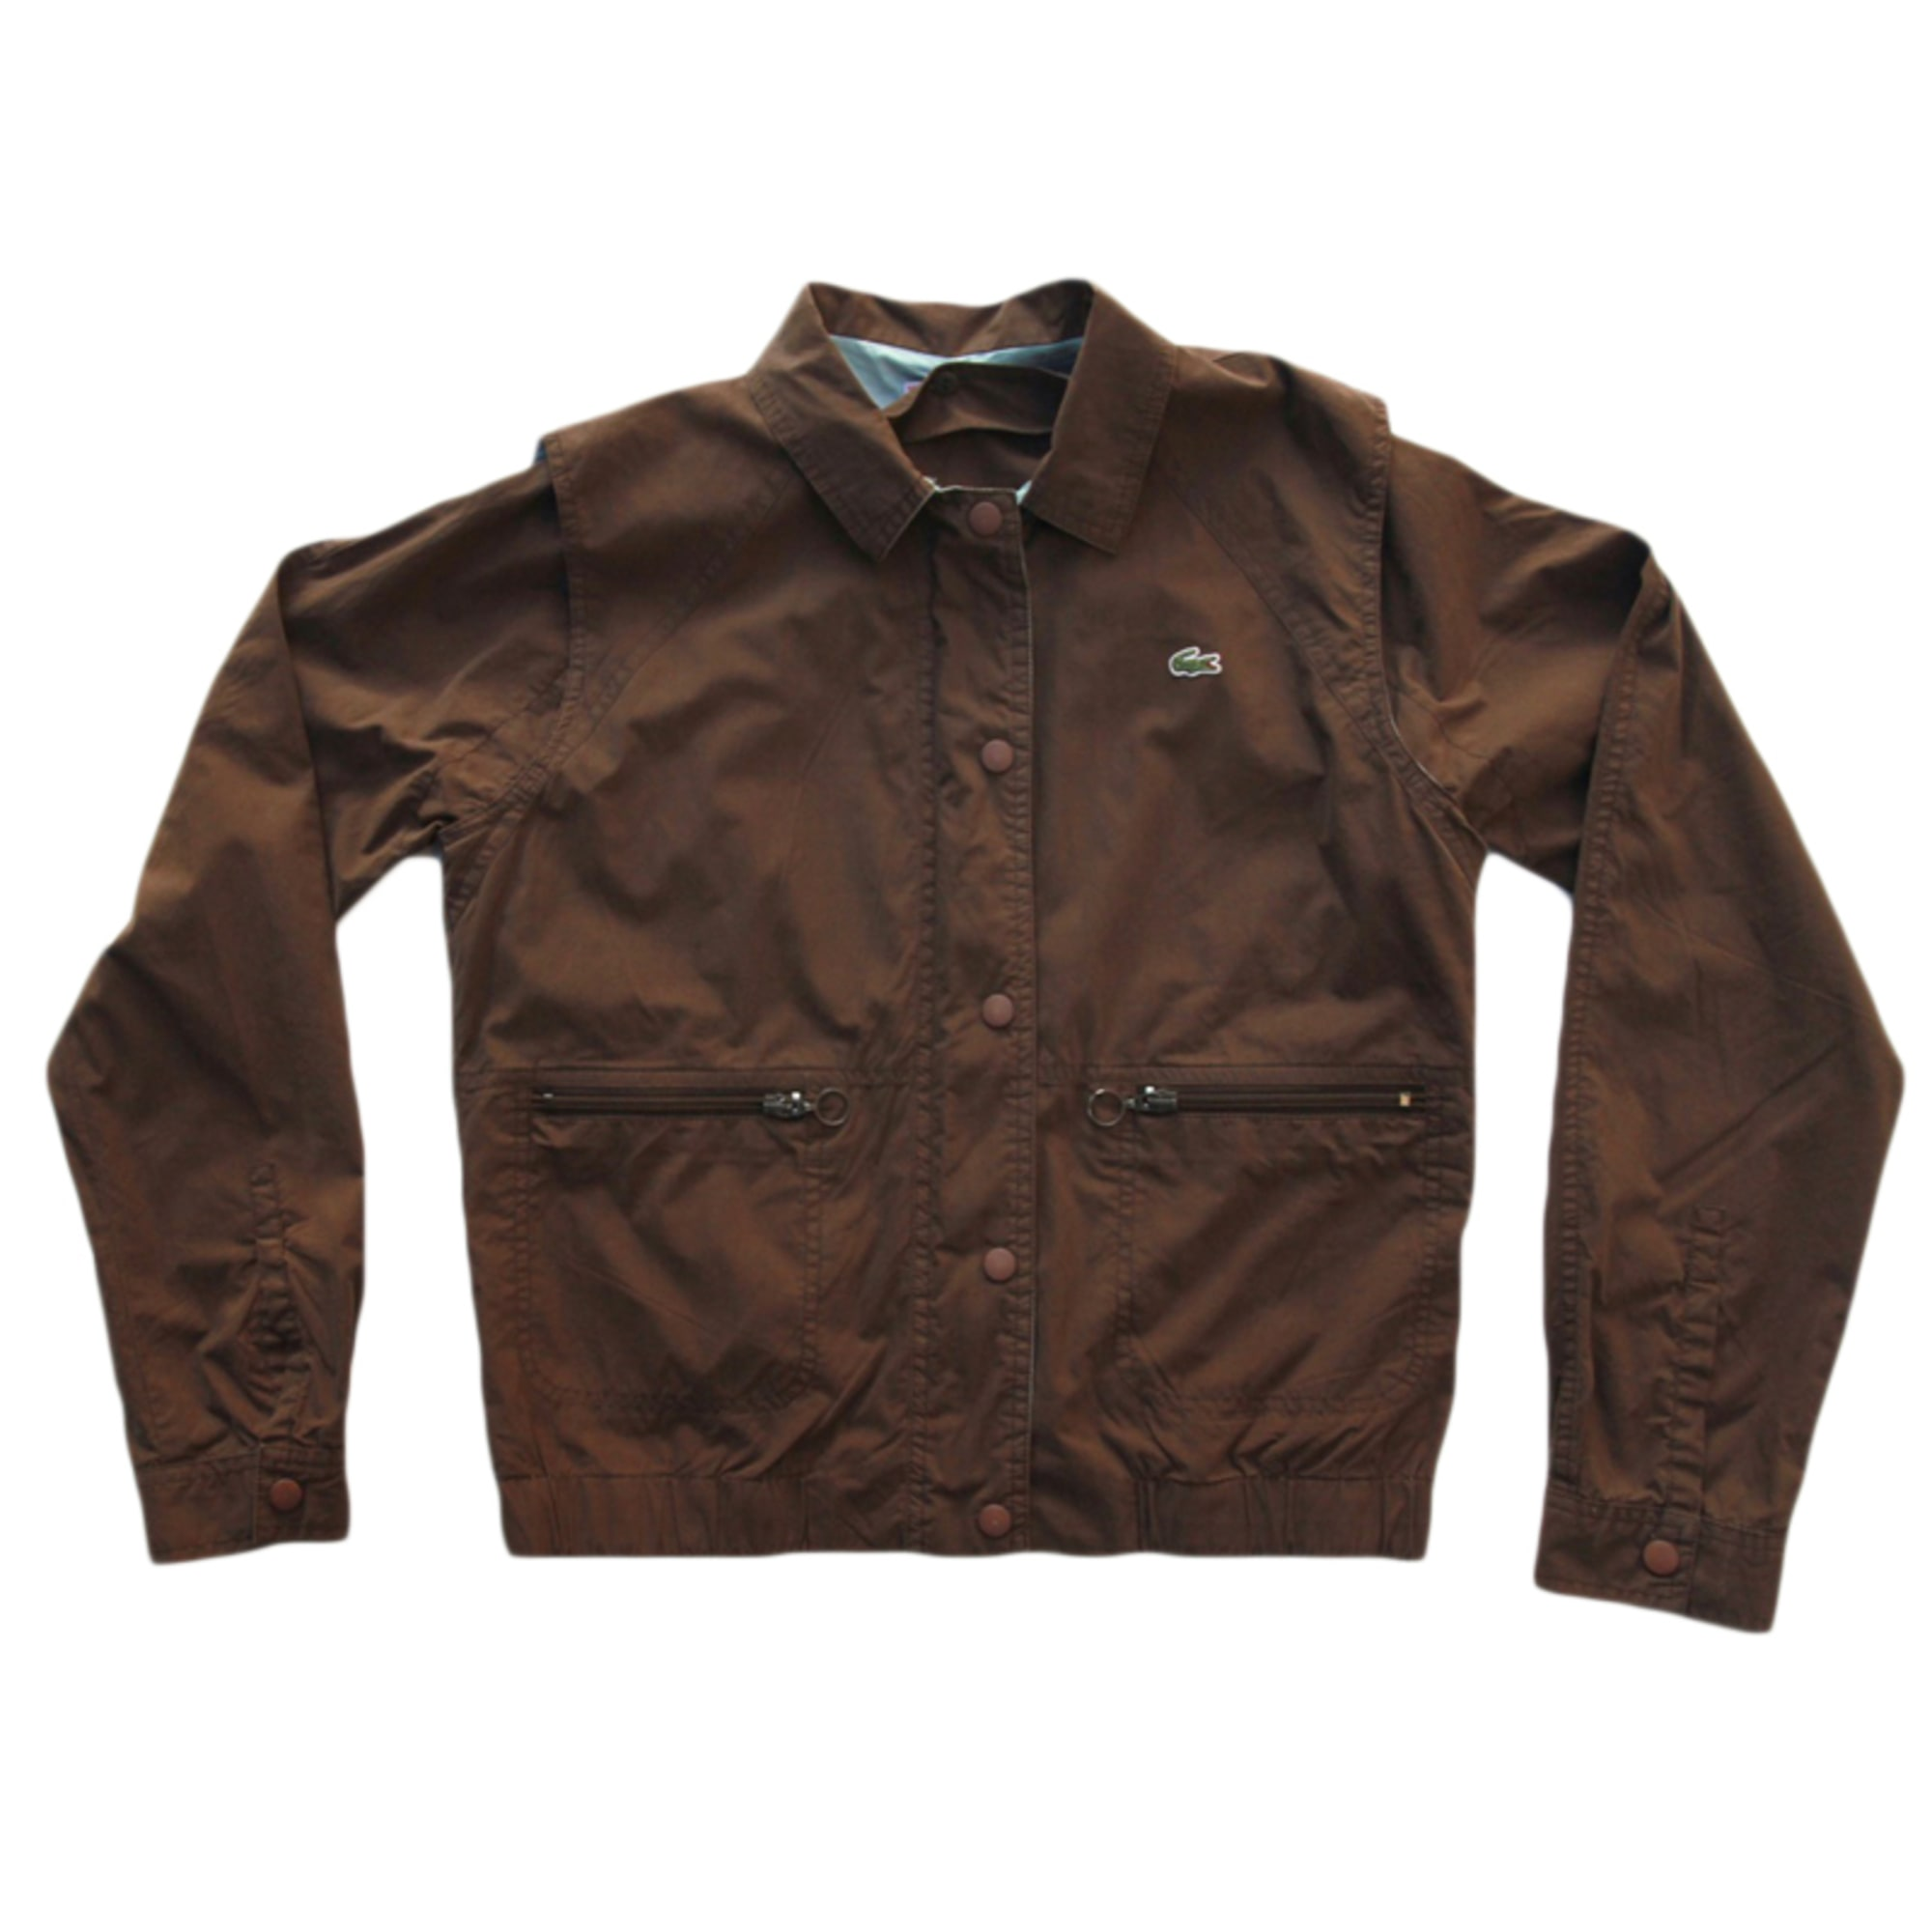 Zipped Jacket LACOSTE Brown